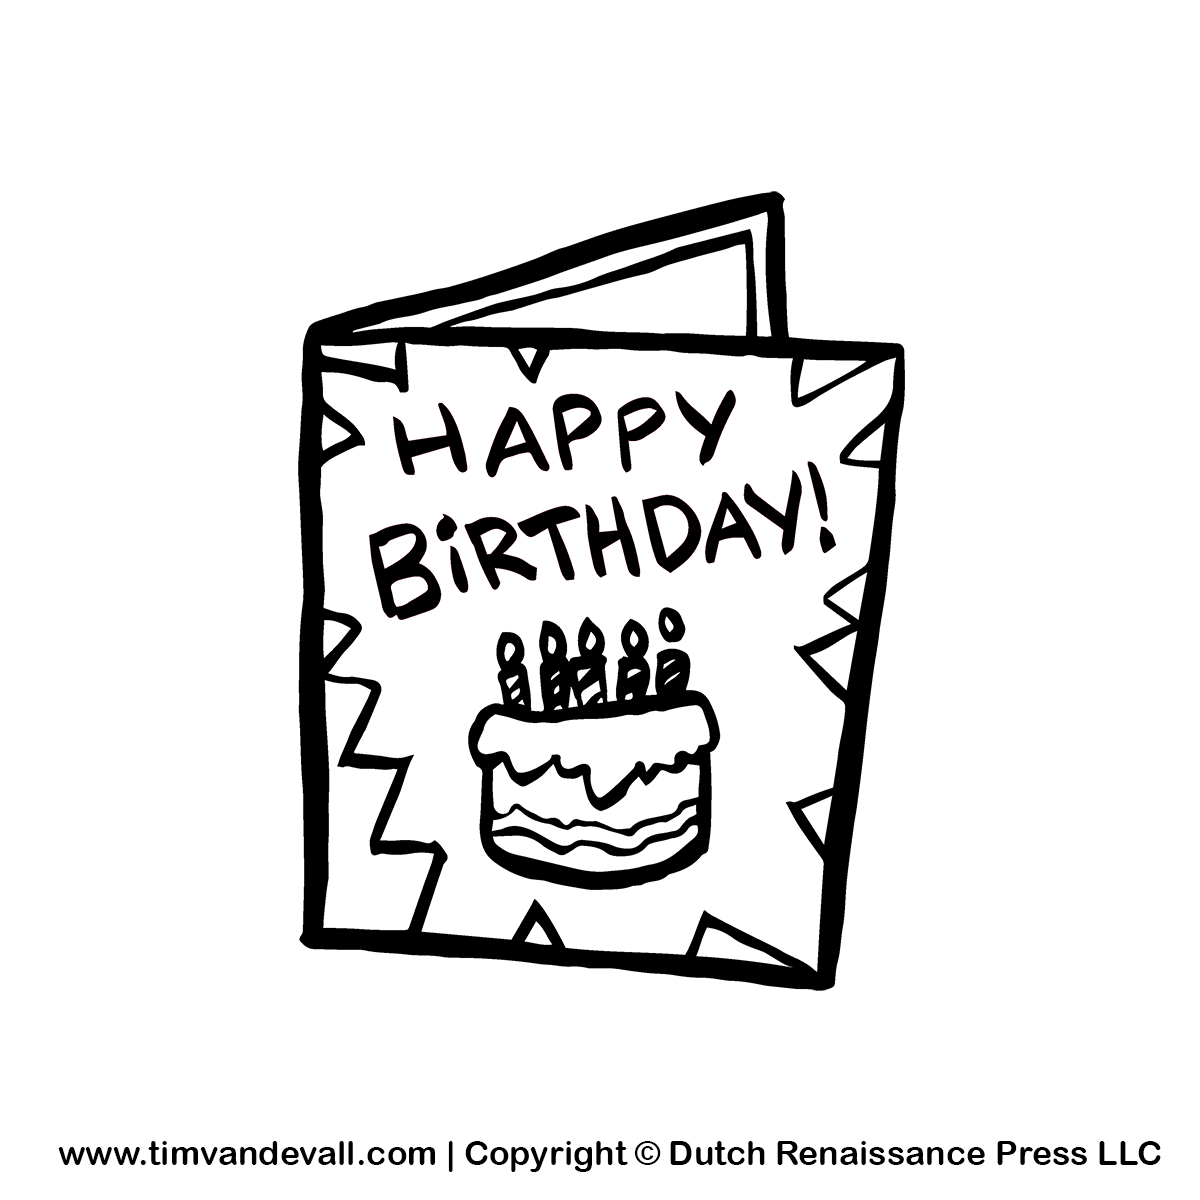 Greeting card black and white clipart suggest